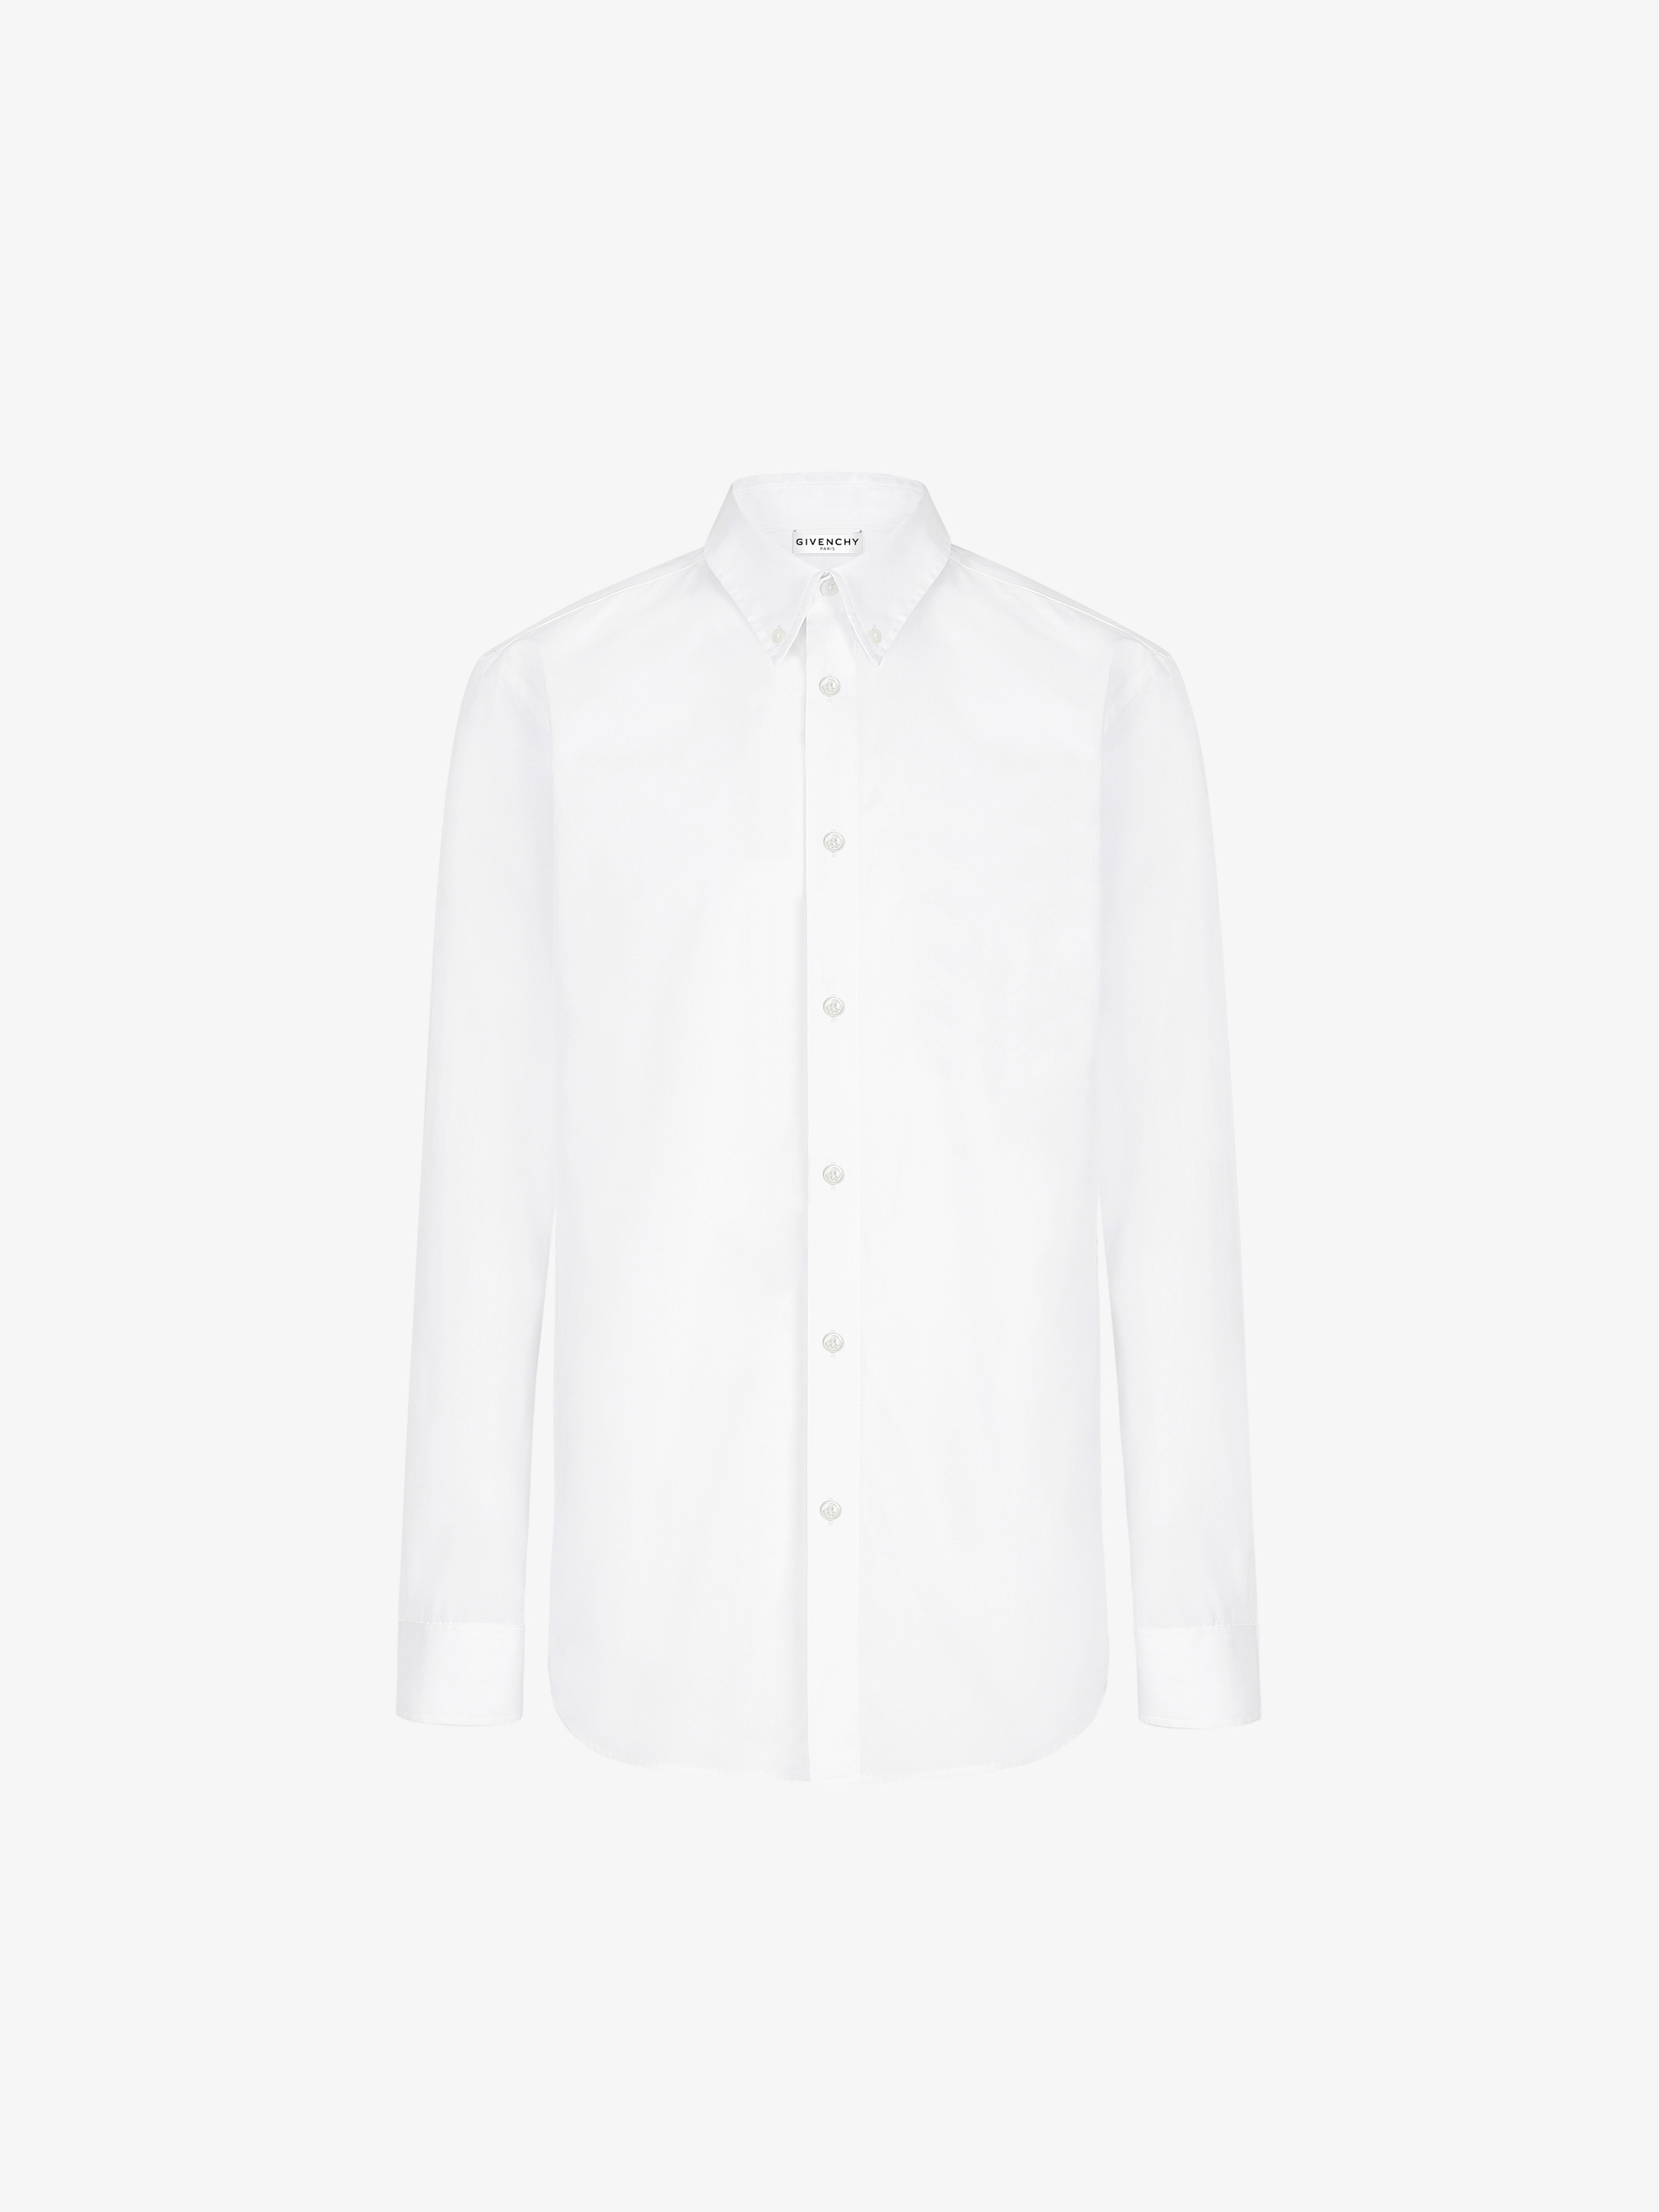 GIVENCHY shirt in oxford with patch